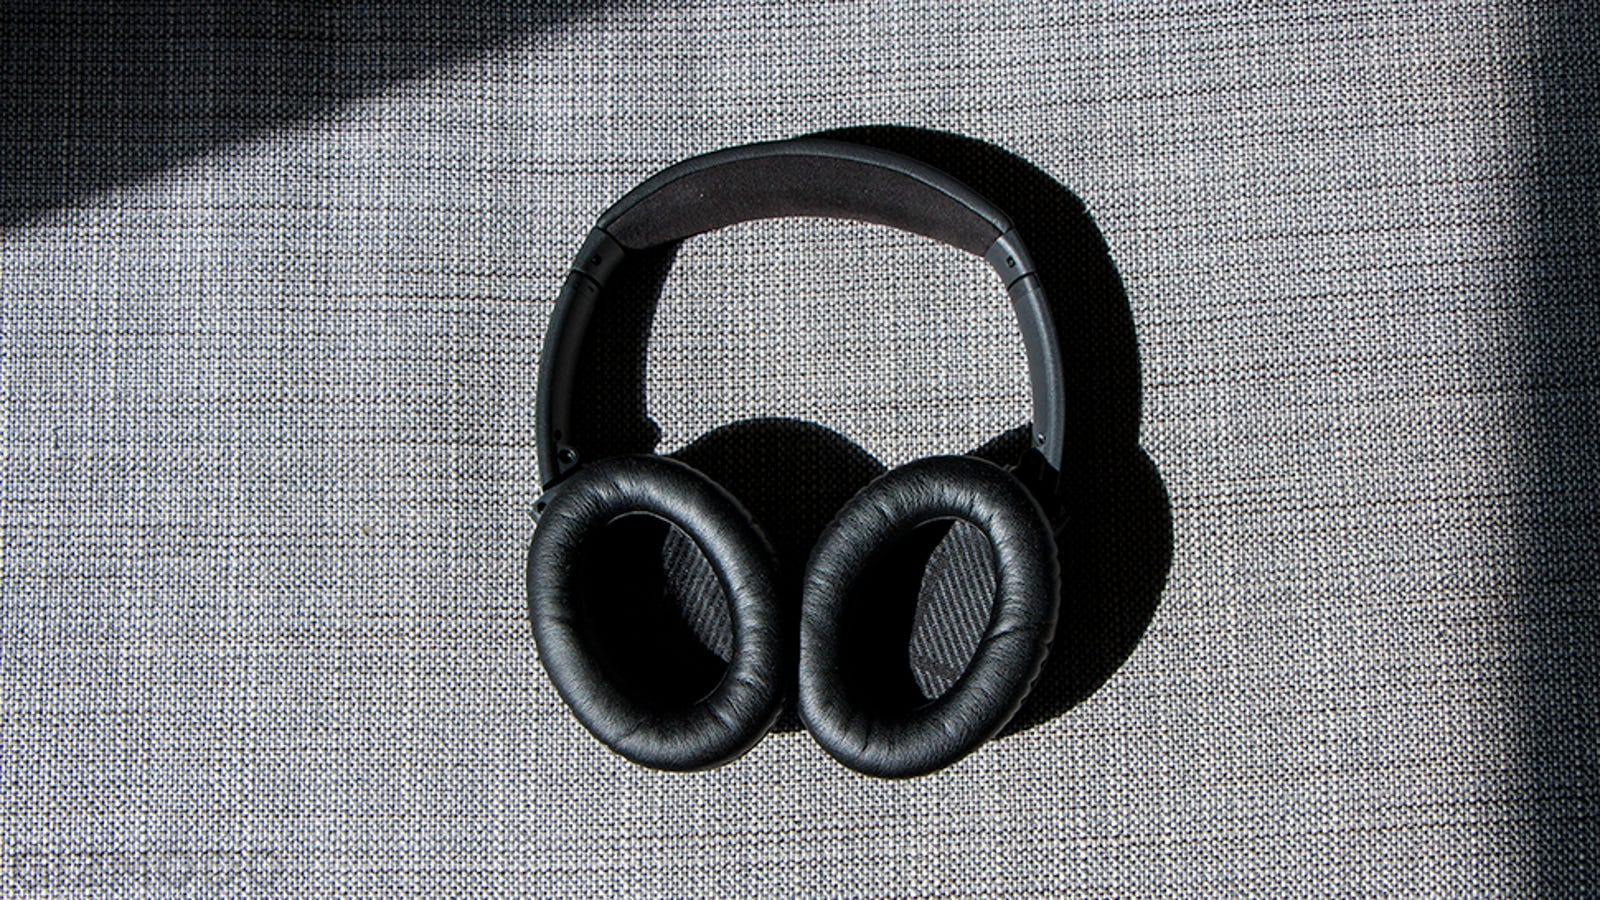 bose wireless headphones grey